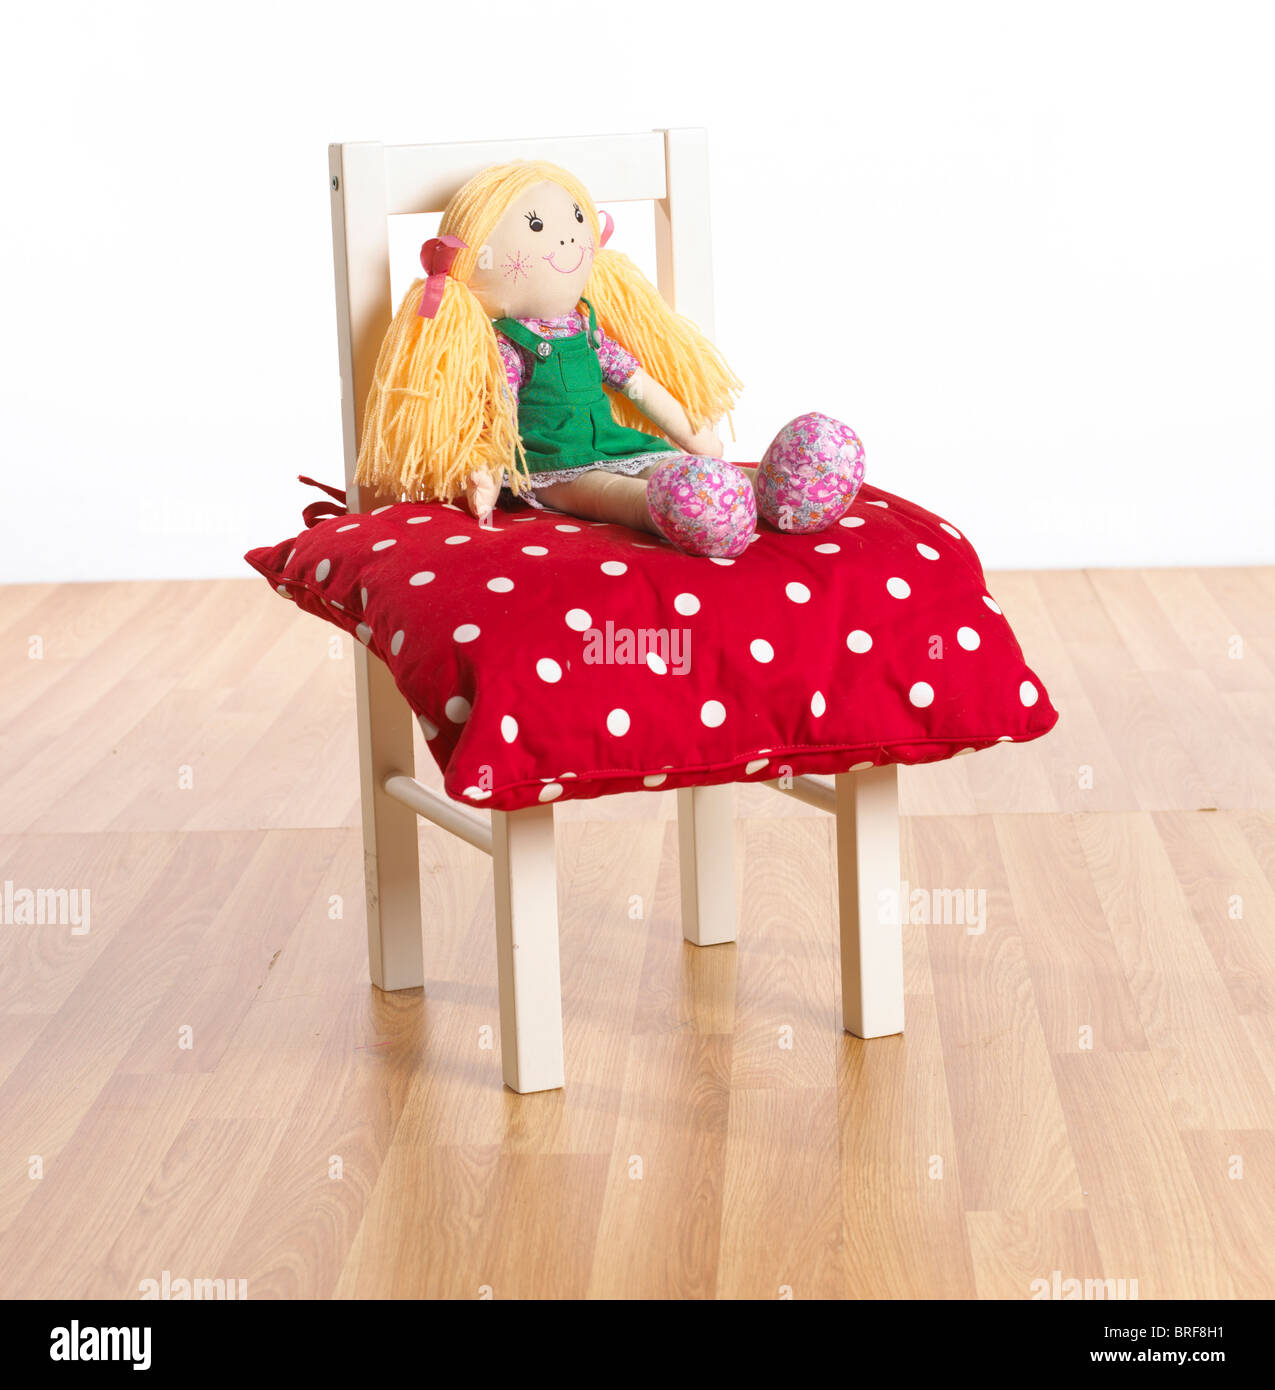 Rag doll sitting on red polka dot cushion on childs chair - Stock Image